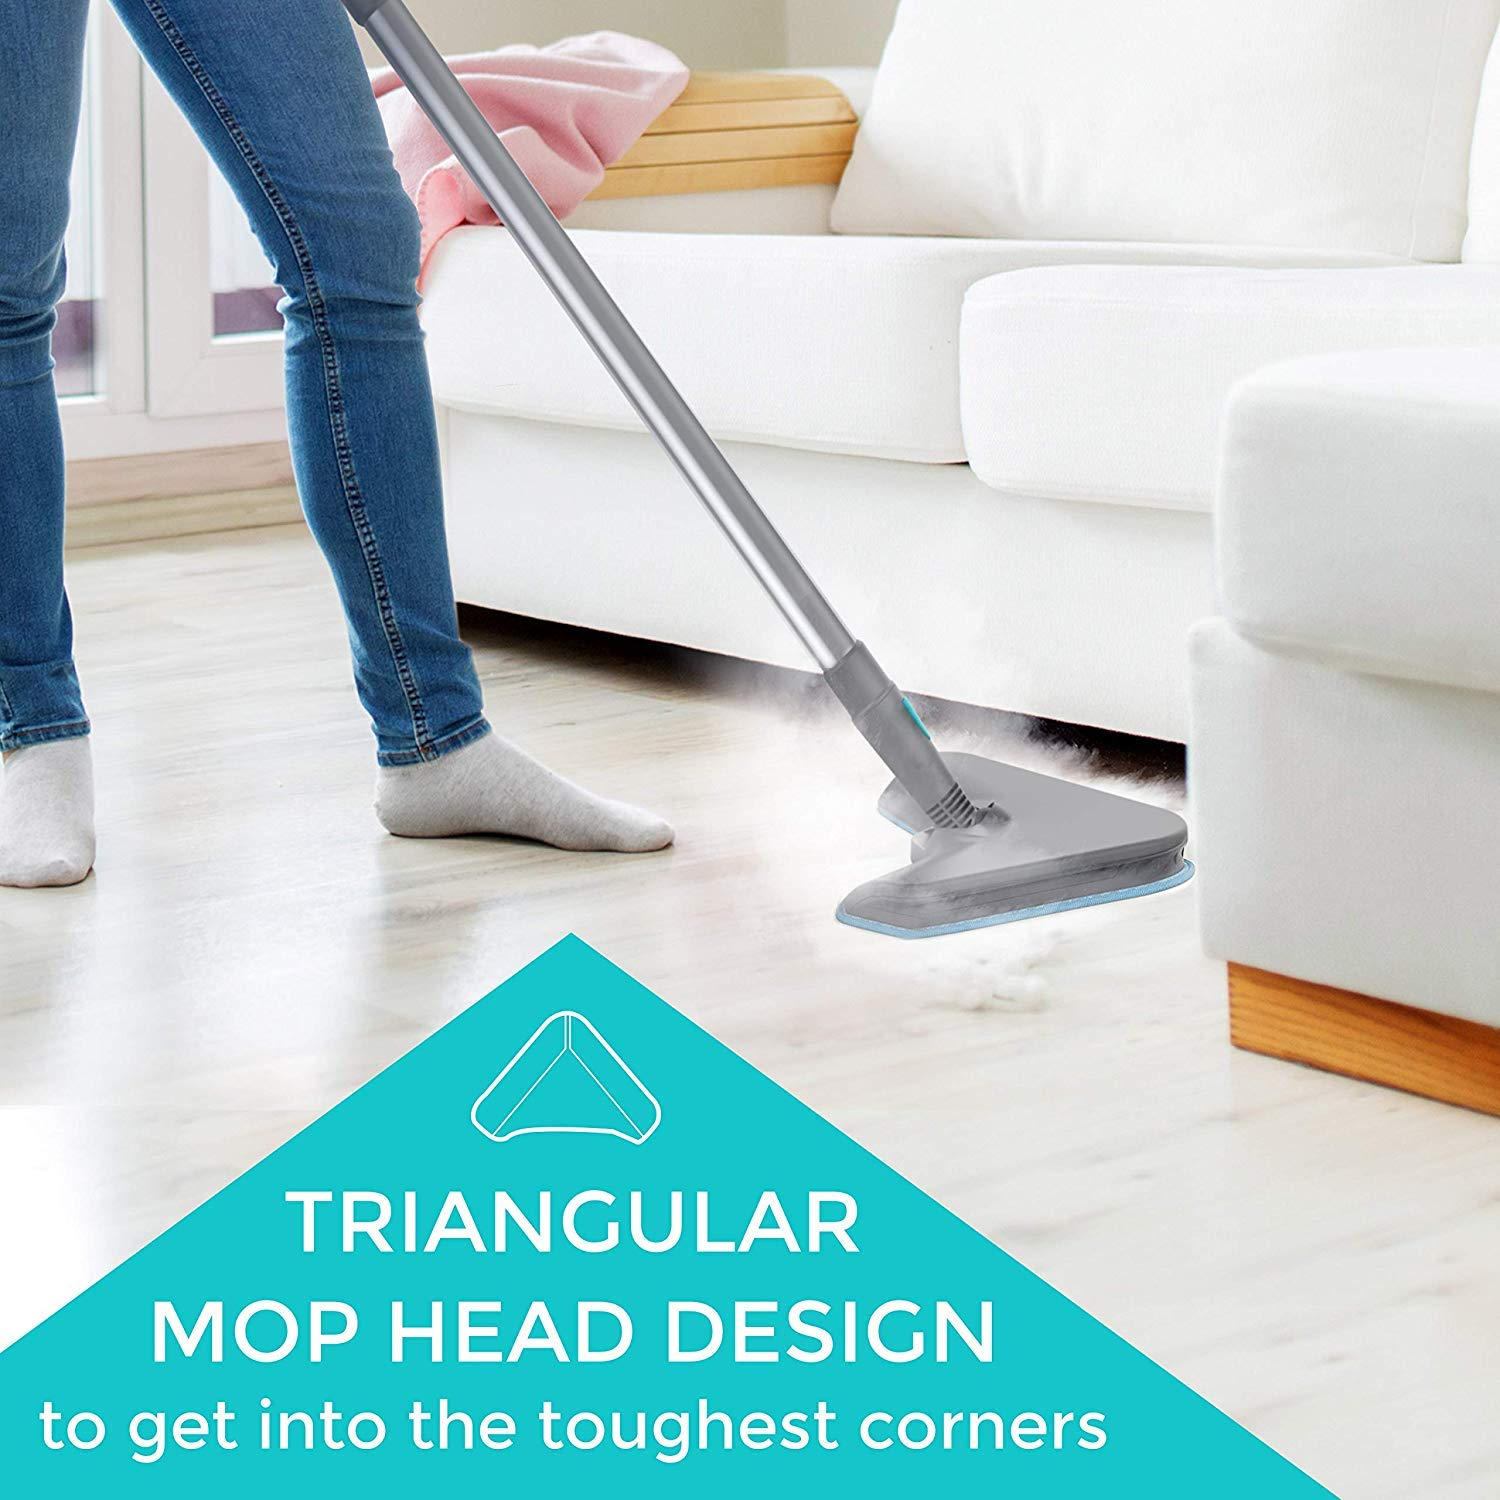 PurSteam ThermoPro Steam Mop